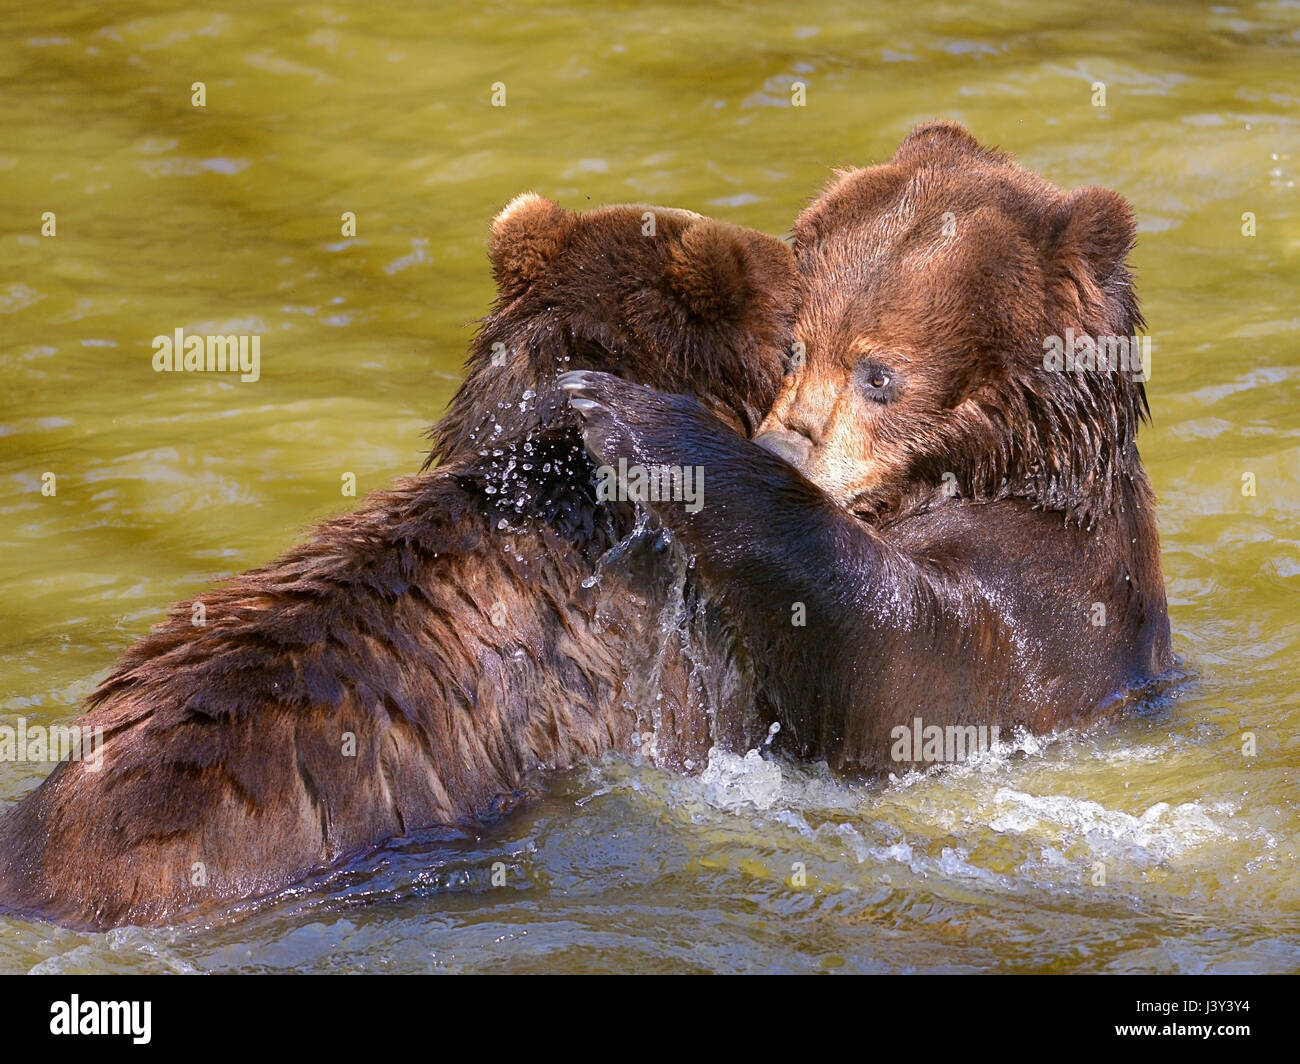 Two grizzlies (Ursus arctos horribilis) playing in the water - Stock Image